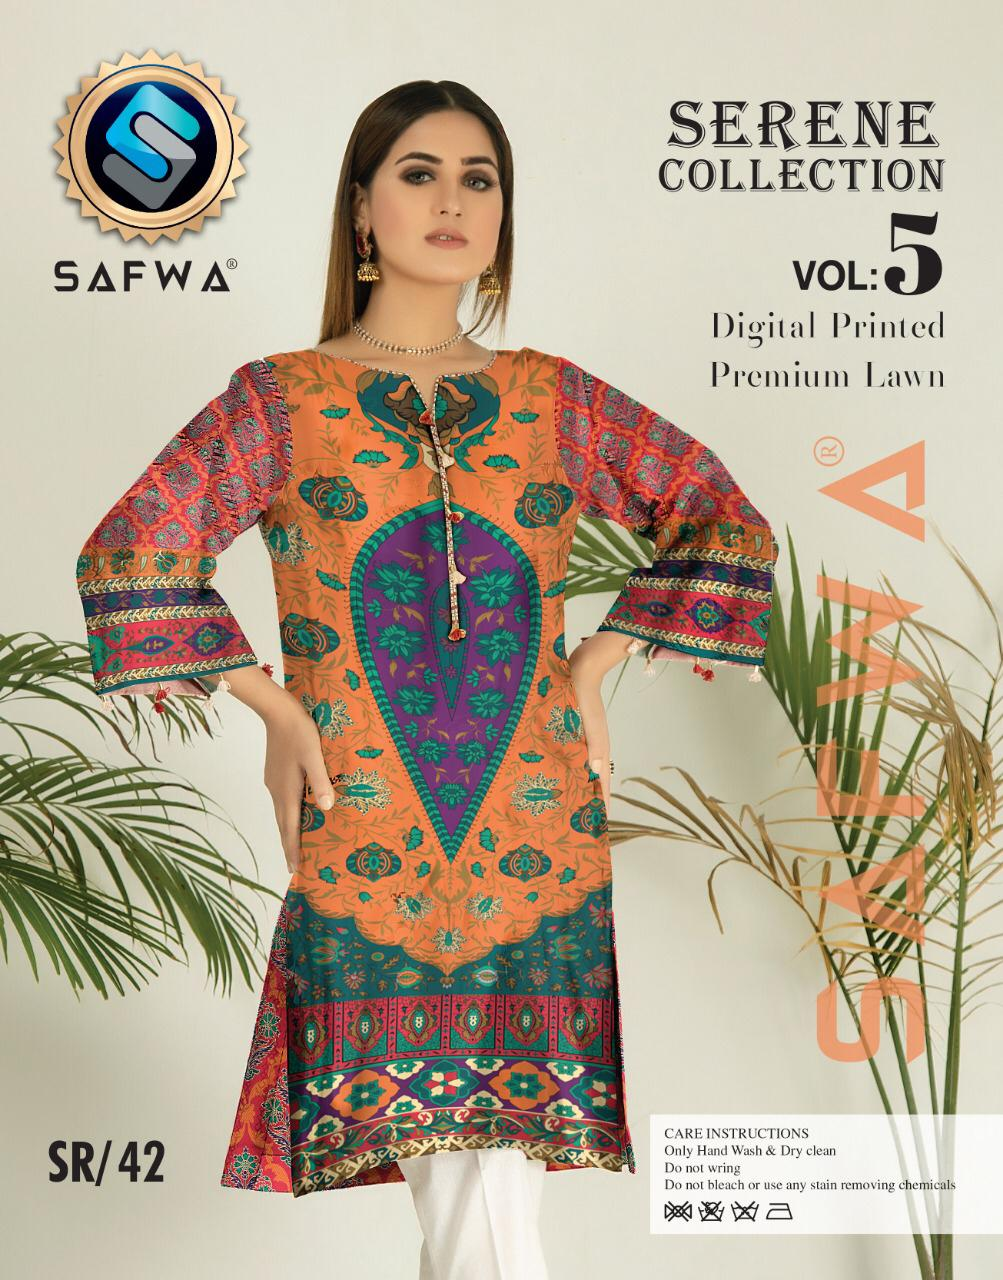 SP-42-SAFWA PREMIUM LAWN-SERENE PLUS COLLECTION-DIGITAL 2 PIECE - Safwa-Pakistani Dresses-Dresses-Kurti-Shop Online